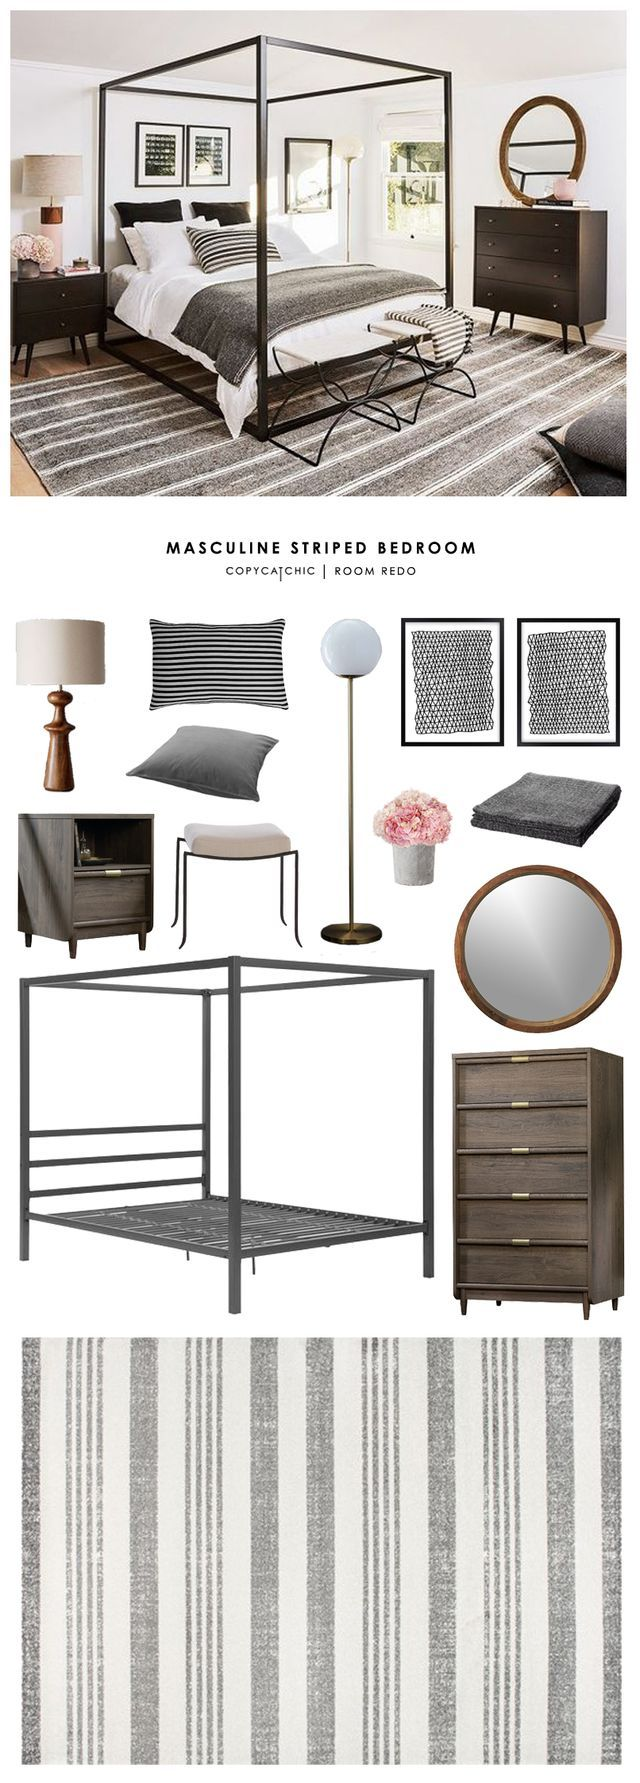 Copy Cat Chic Room Redo | Masculine Striped Bedroom